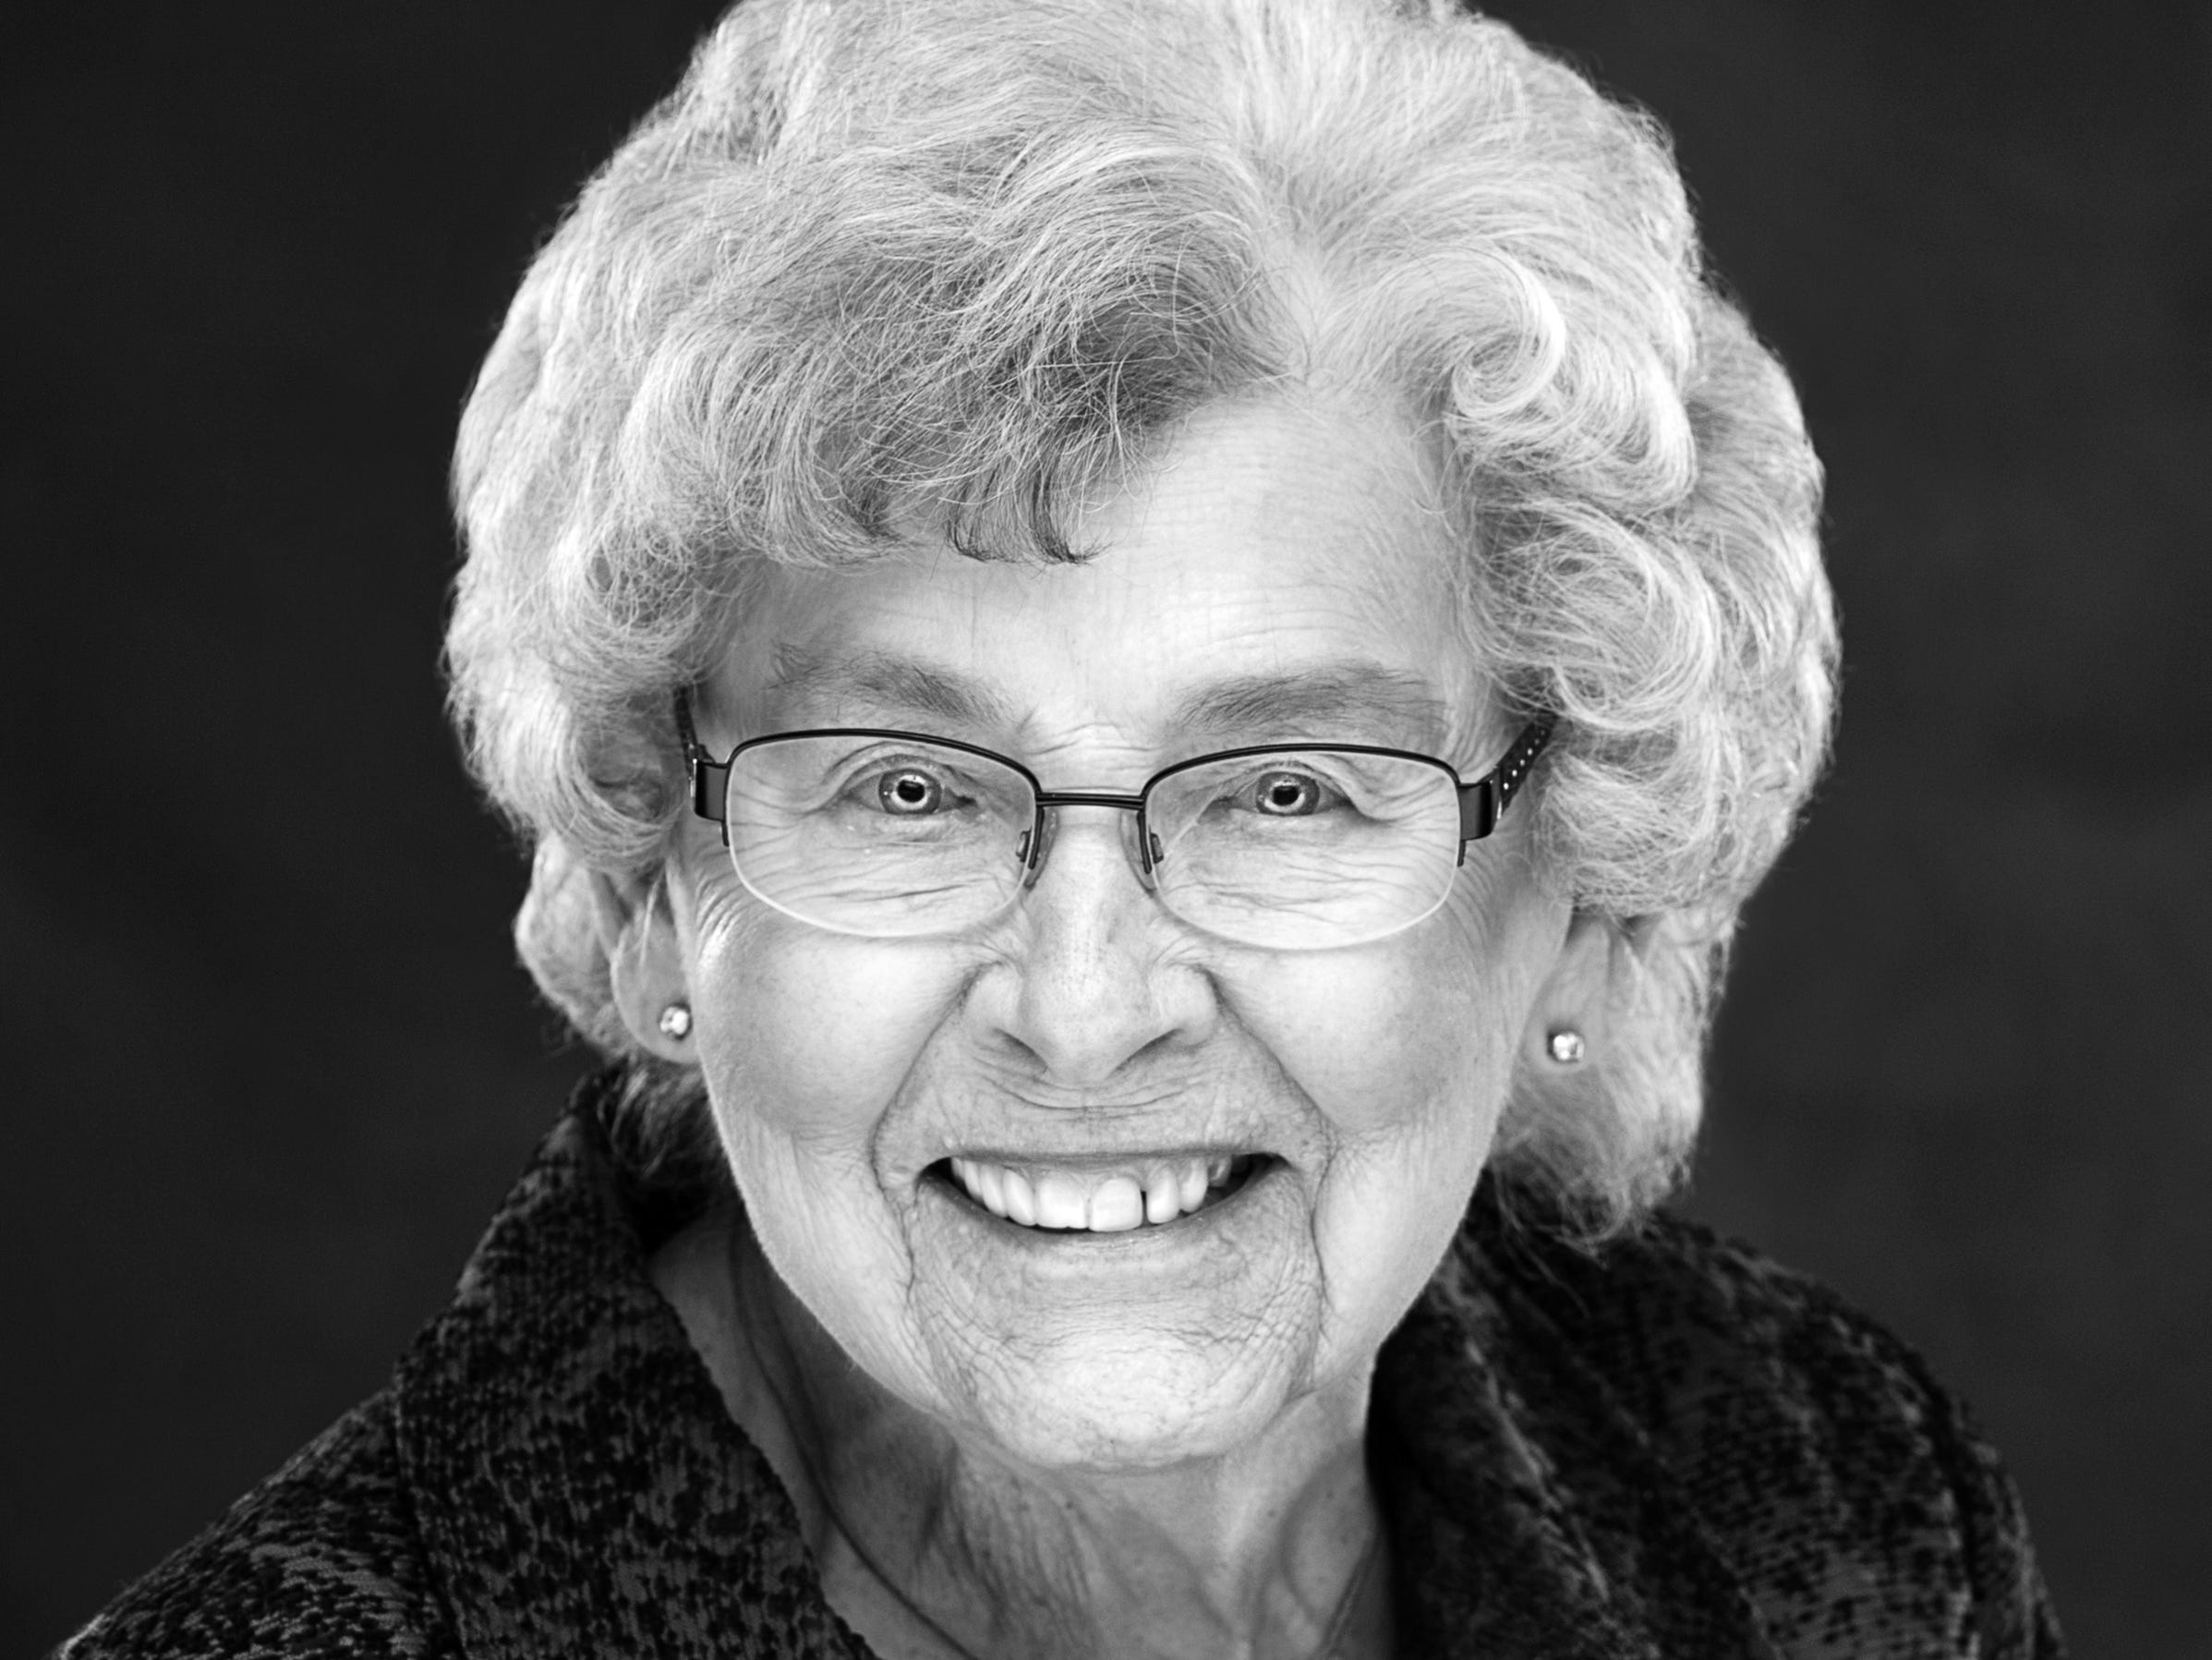 Irene Schoepke, 92: Irene is a woman of many talents, from woodworking and painting to preparing delicious meals and desserts to share. St. Stephen's Lutheran Church in Wausau relies on Irene to make and serve meals for funerals. She's an active Red Hatter, and she's a member of a quilting club that donates quilts to local charities. She was a longtime snowmobile club member and polka enthusiast. Her four great-grandsons are her biggest fans.